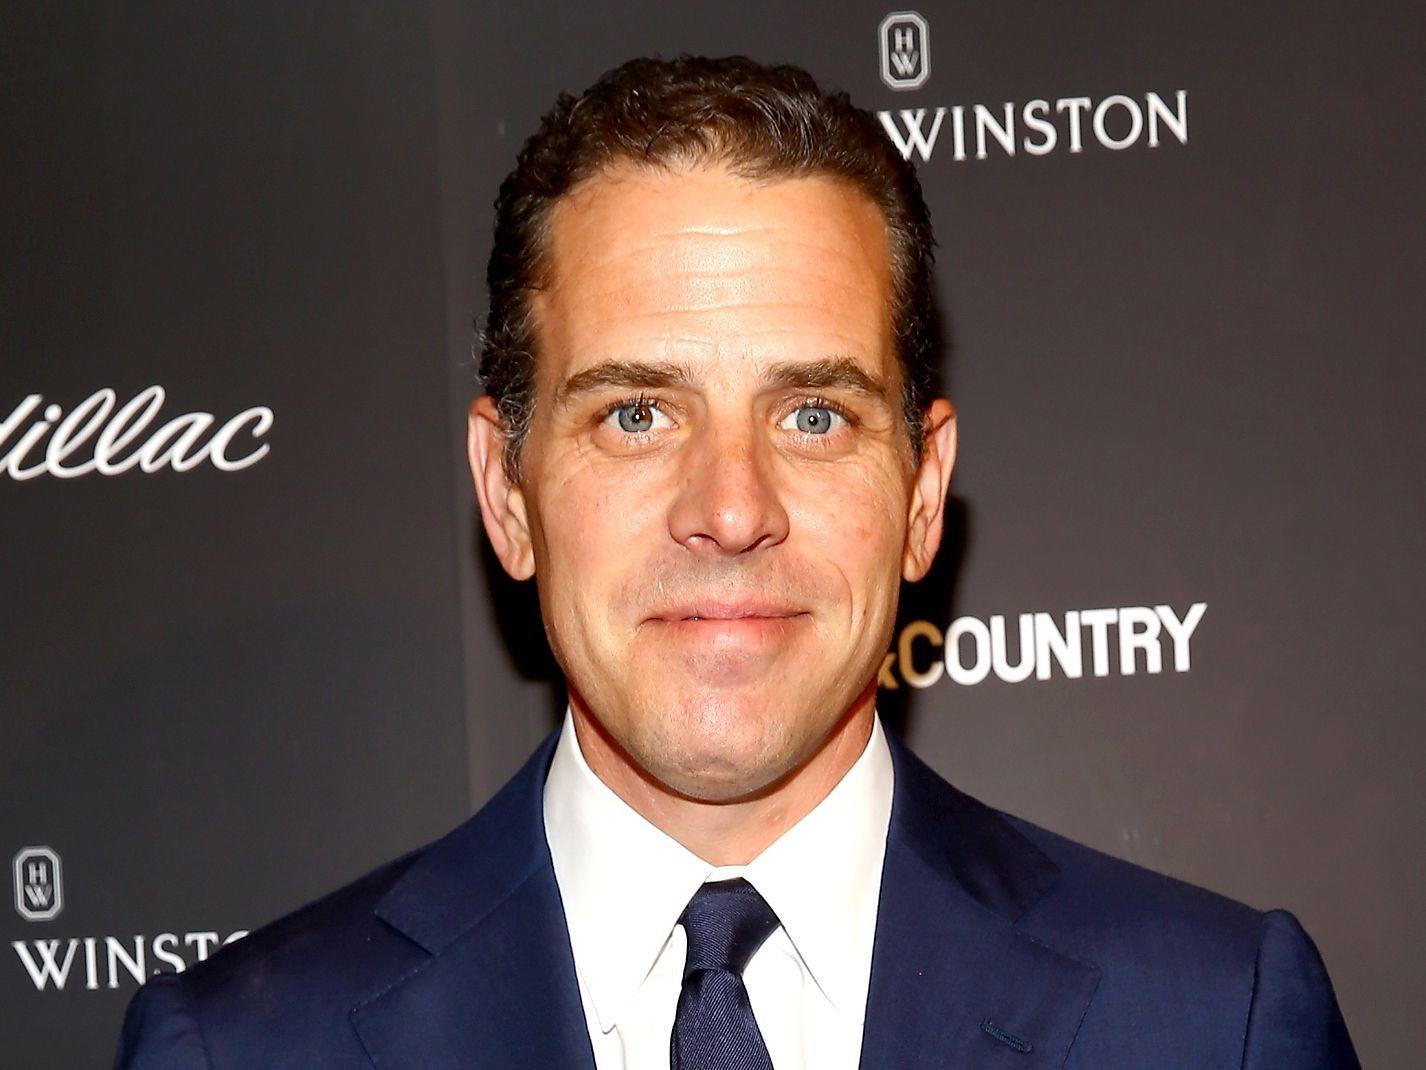 State Official Raised Hunter Biden Concerns in 2015